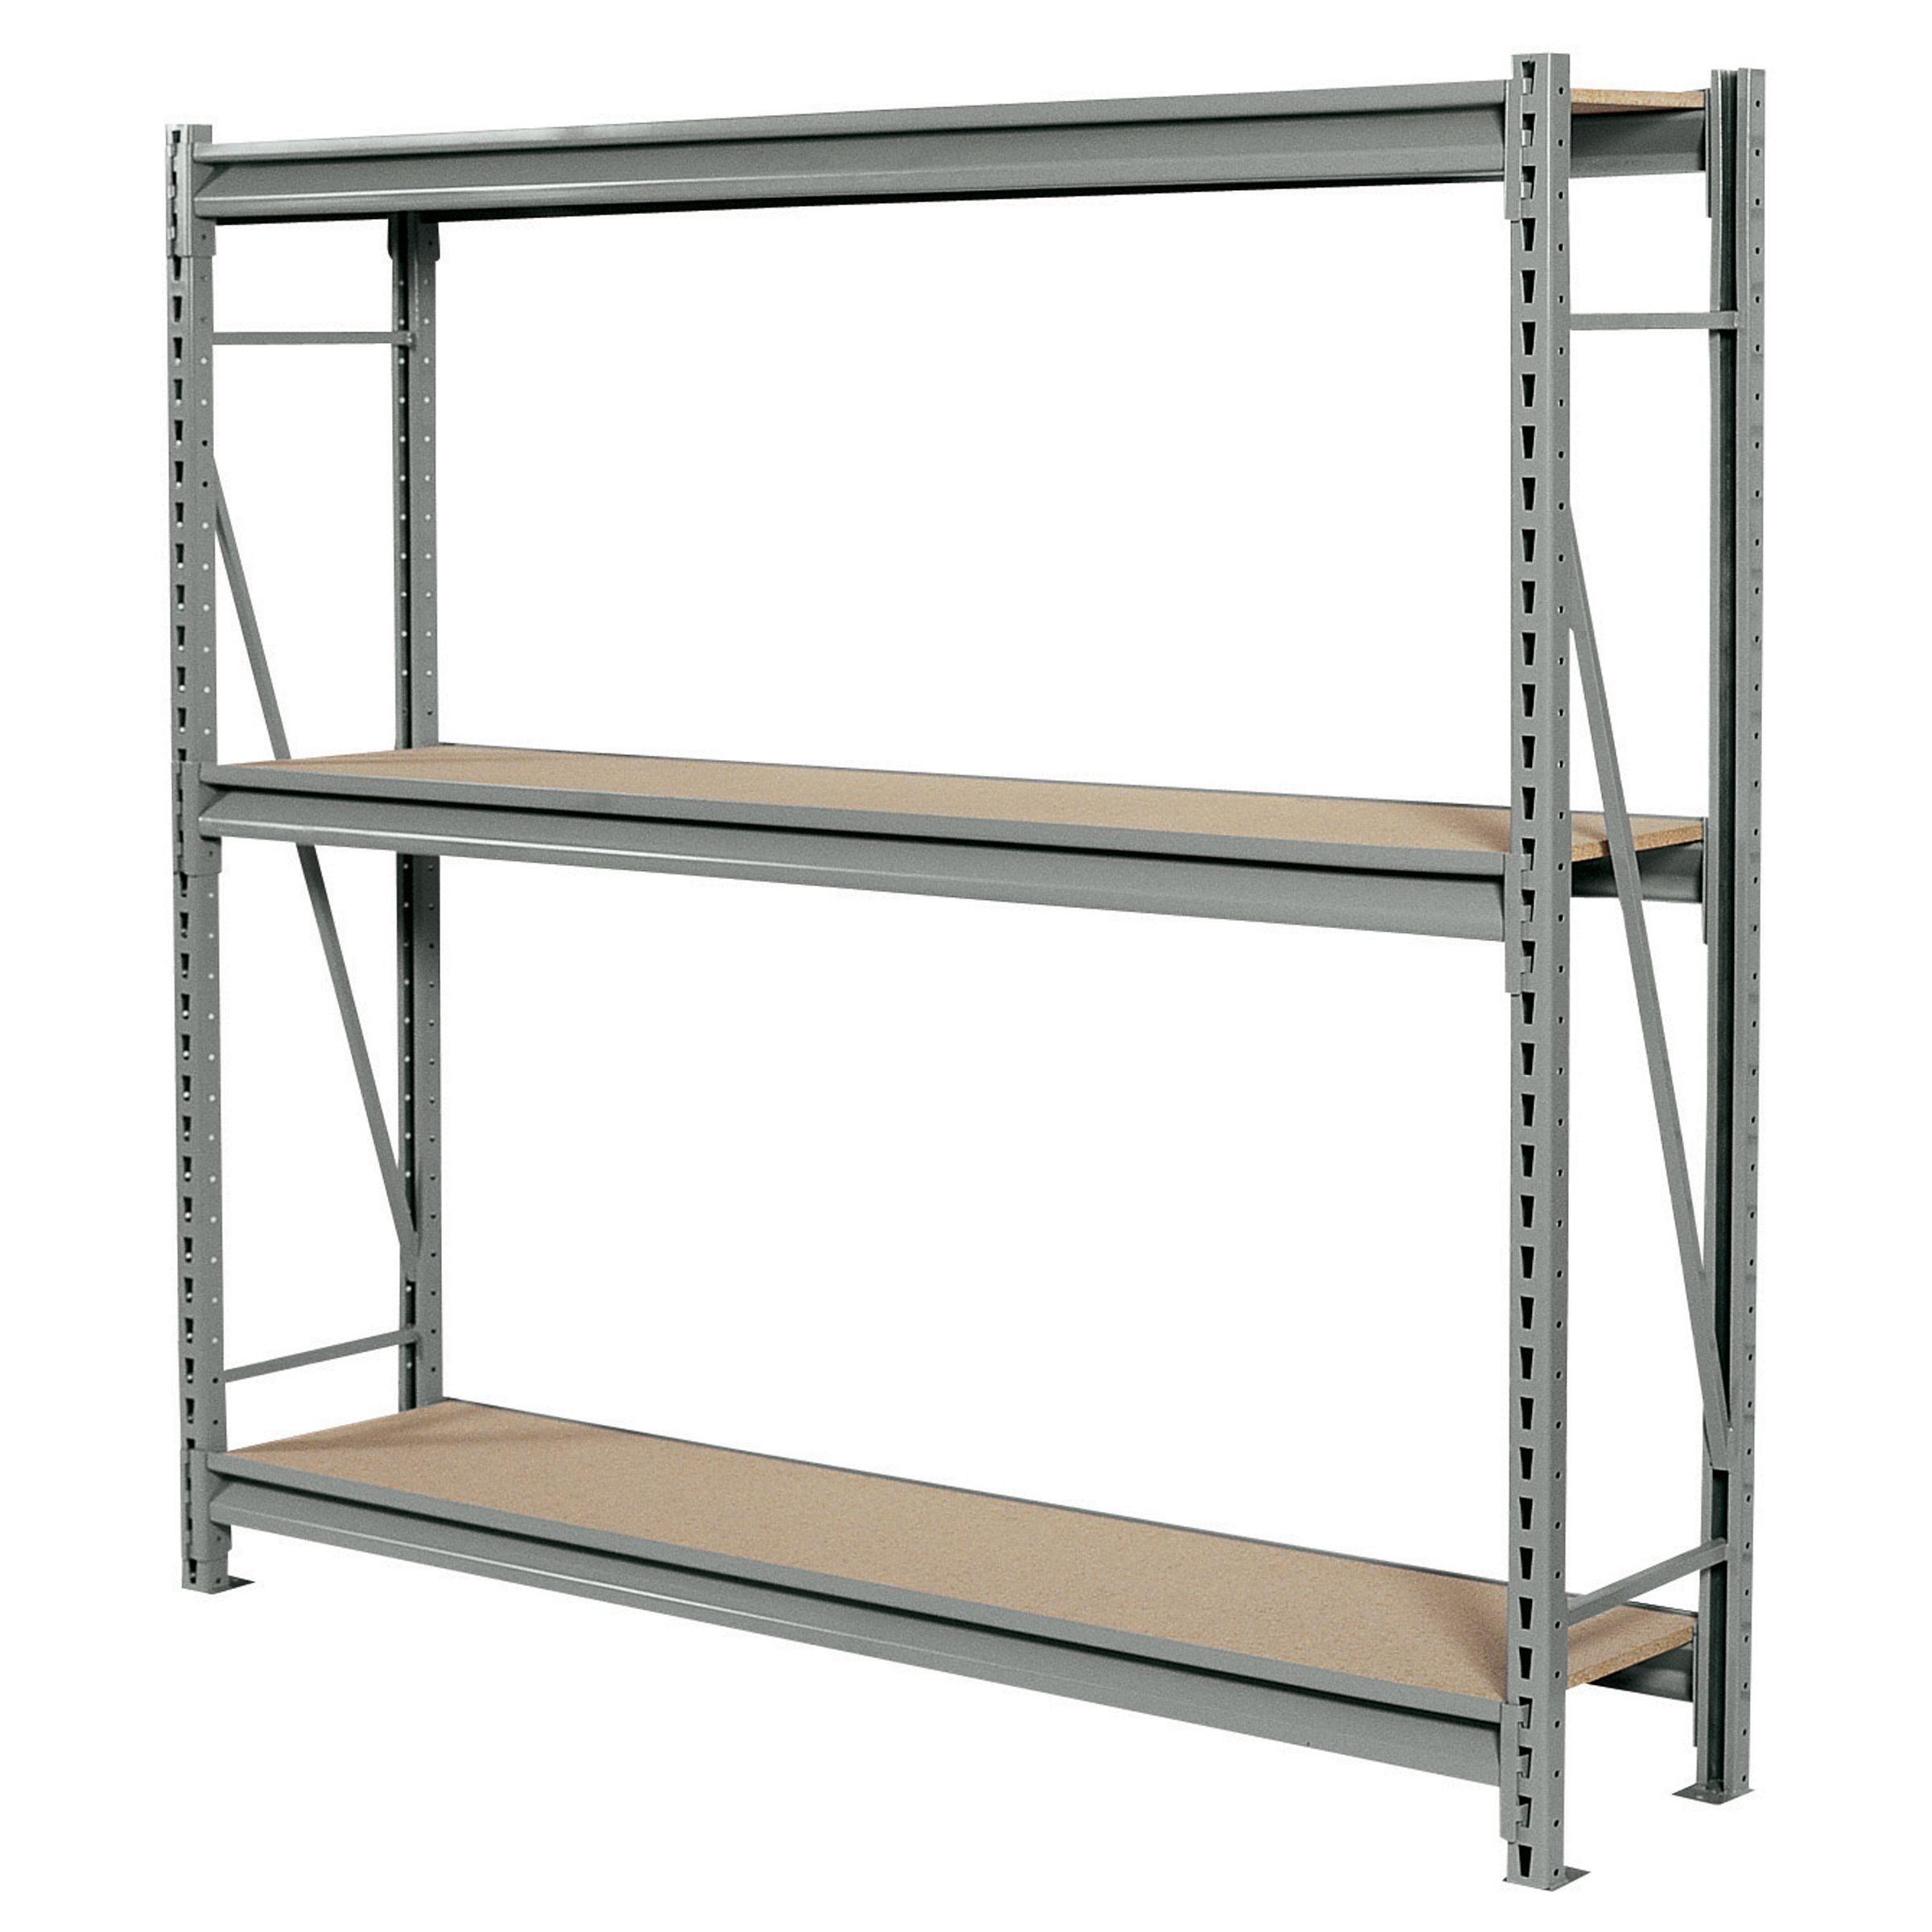 Gorilla Garage Racks Metal Shelving Keep Organized With Garage Shelving From Sears